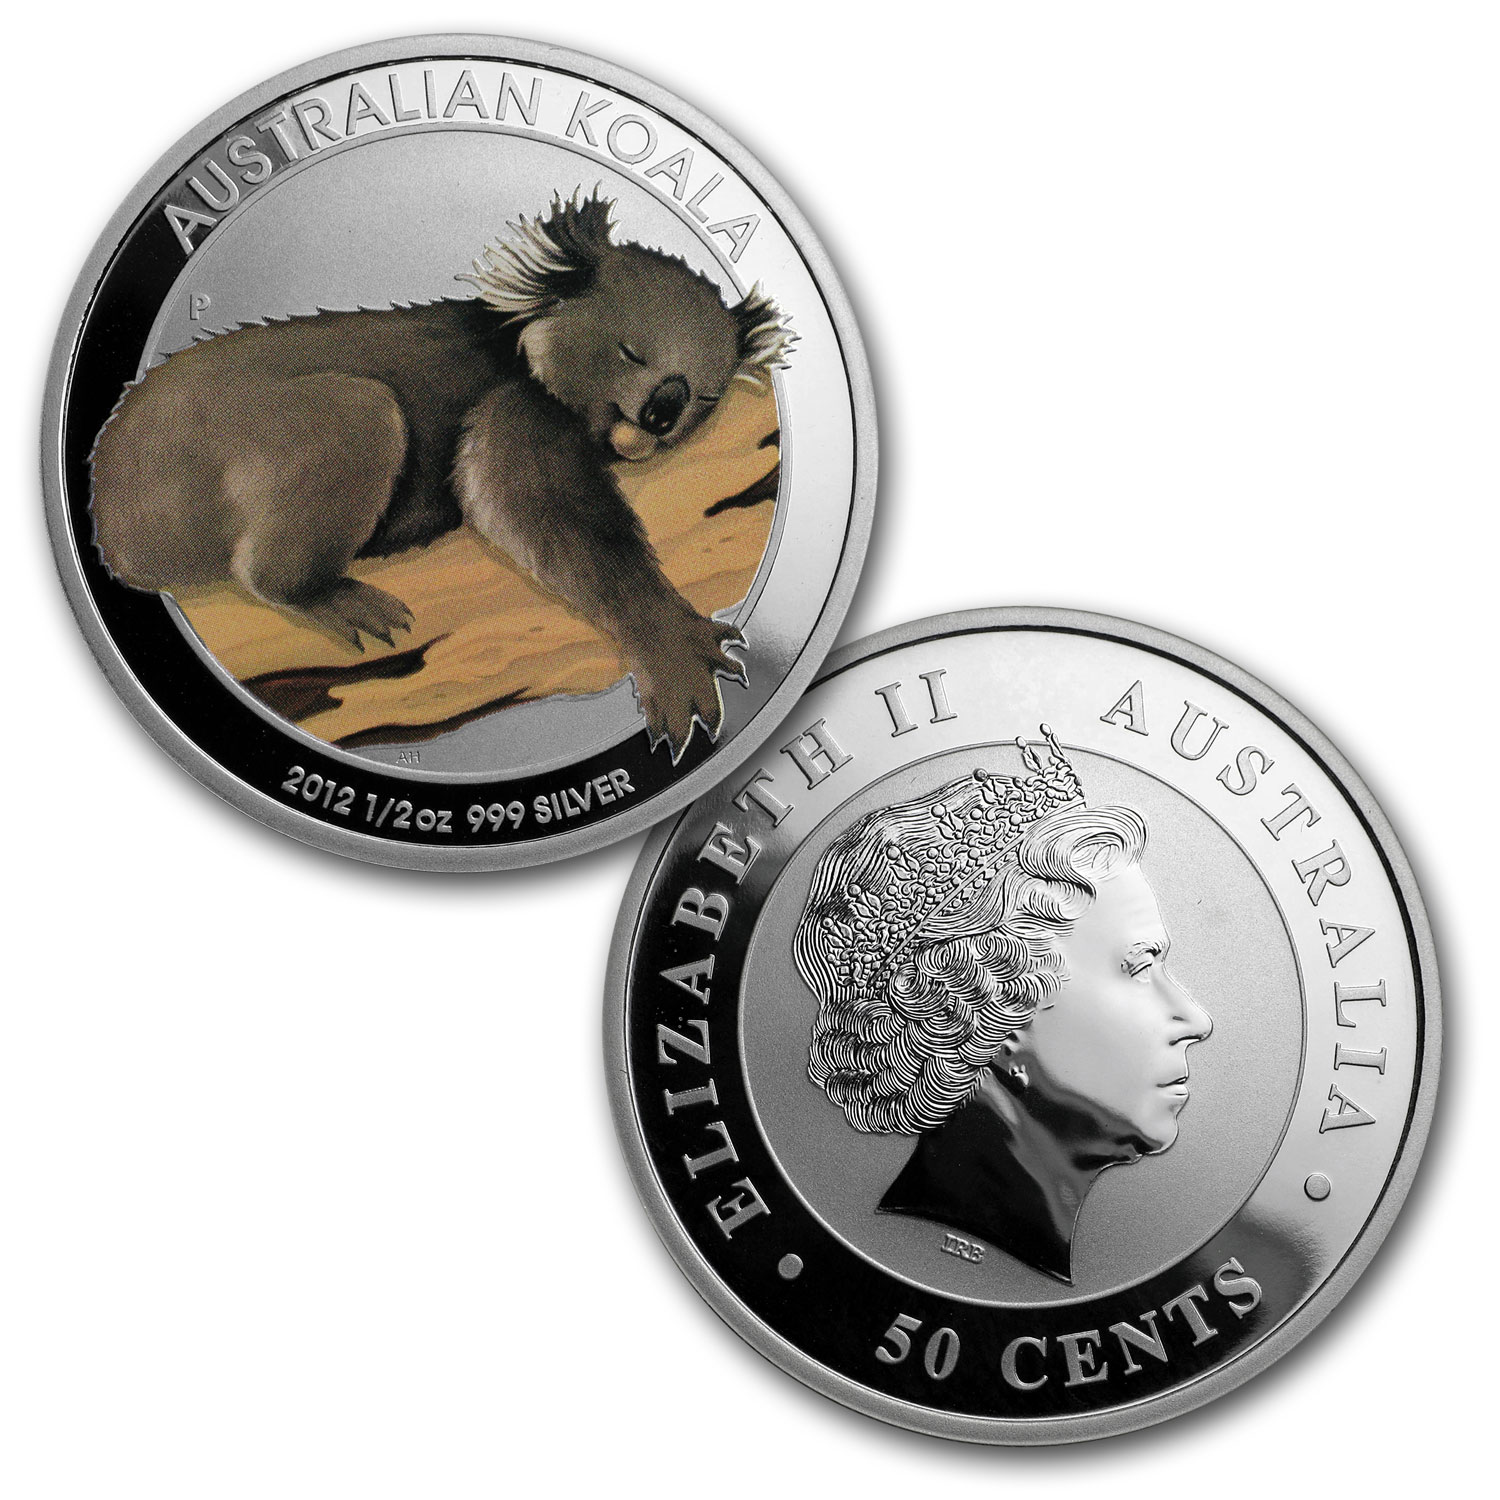 2012 1/2 oz Silver Australian Outback Collection - 3 Coin Set